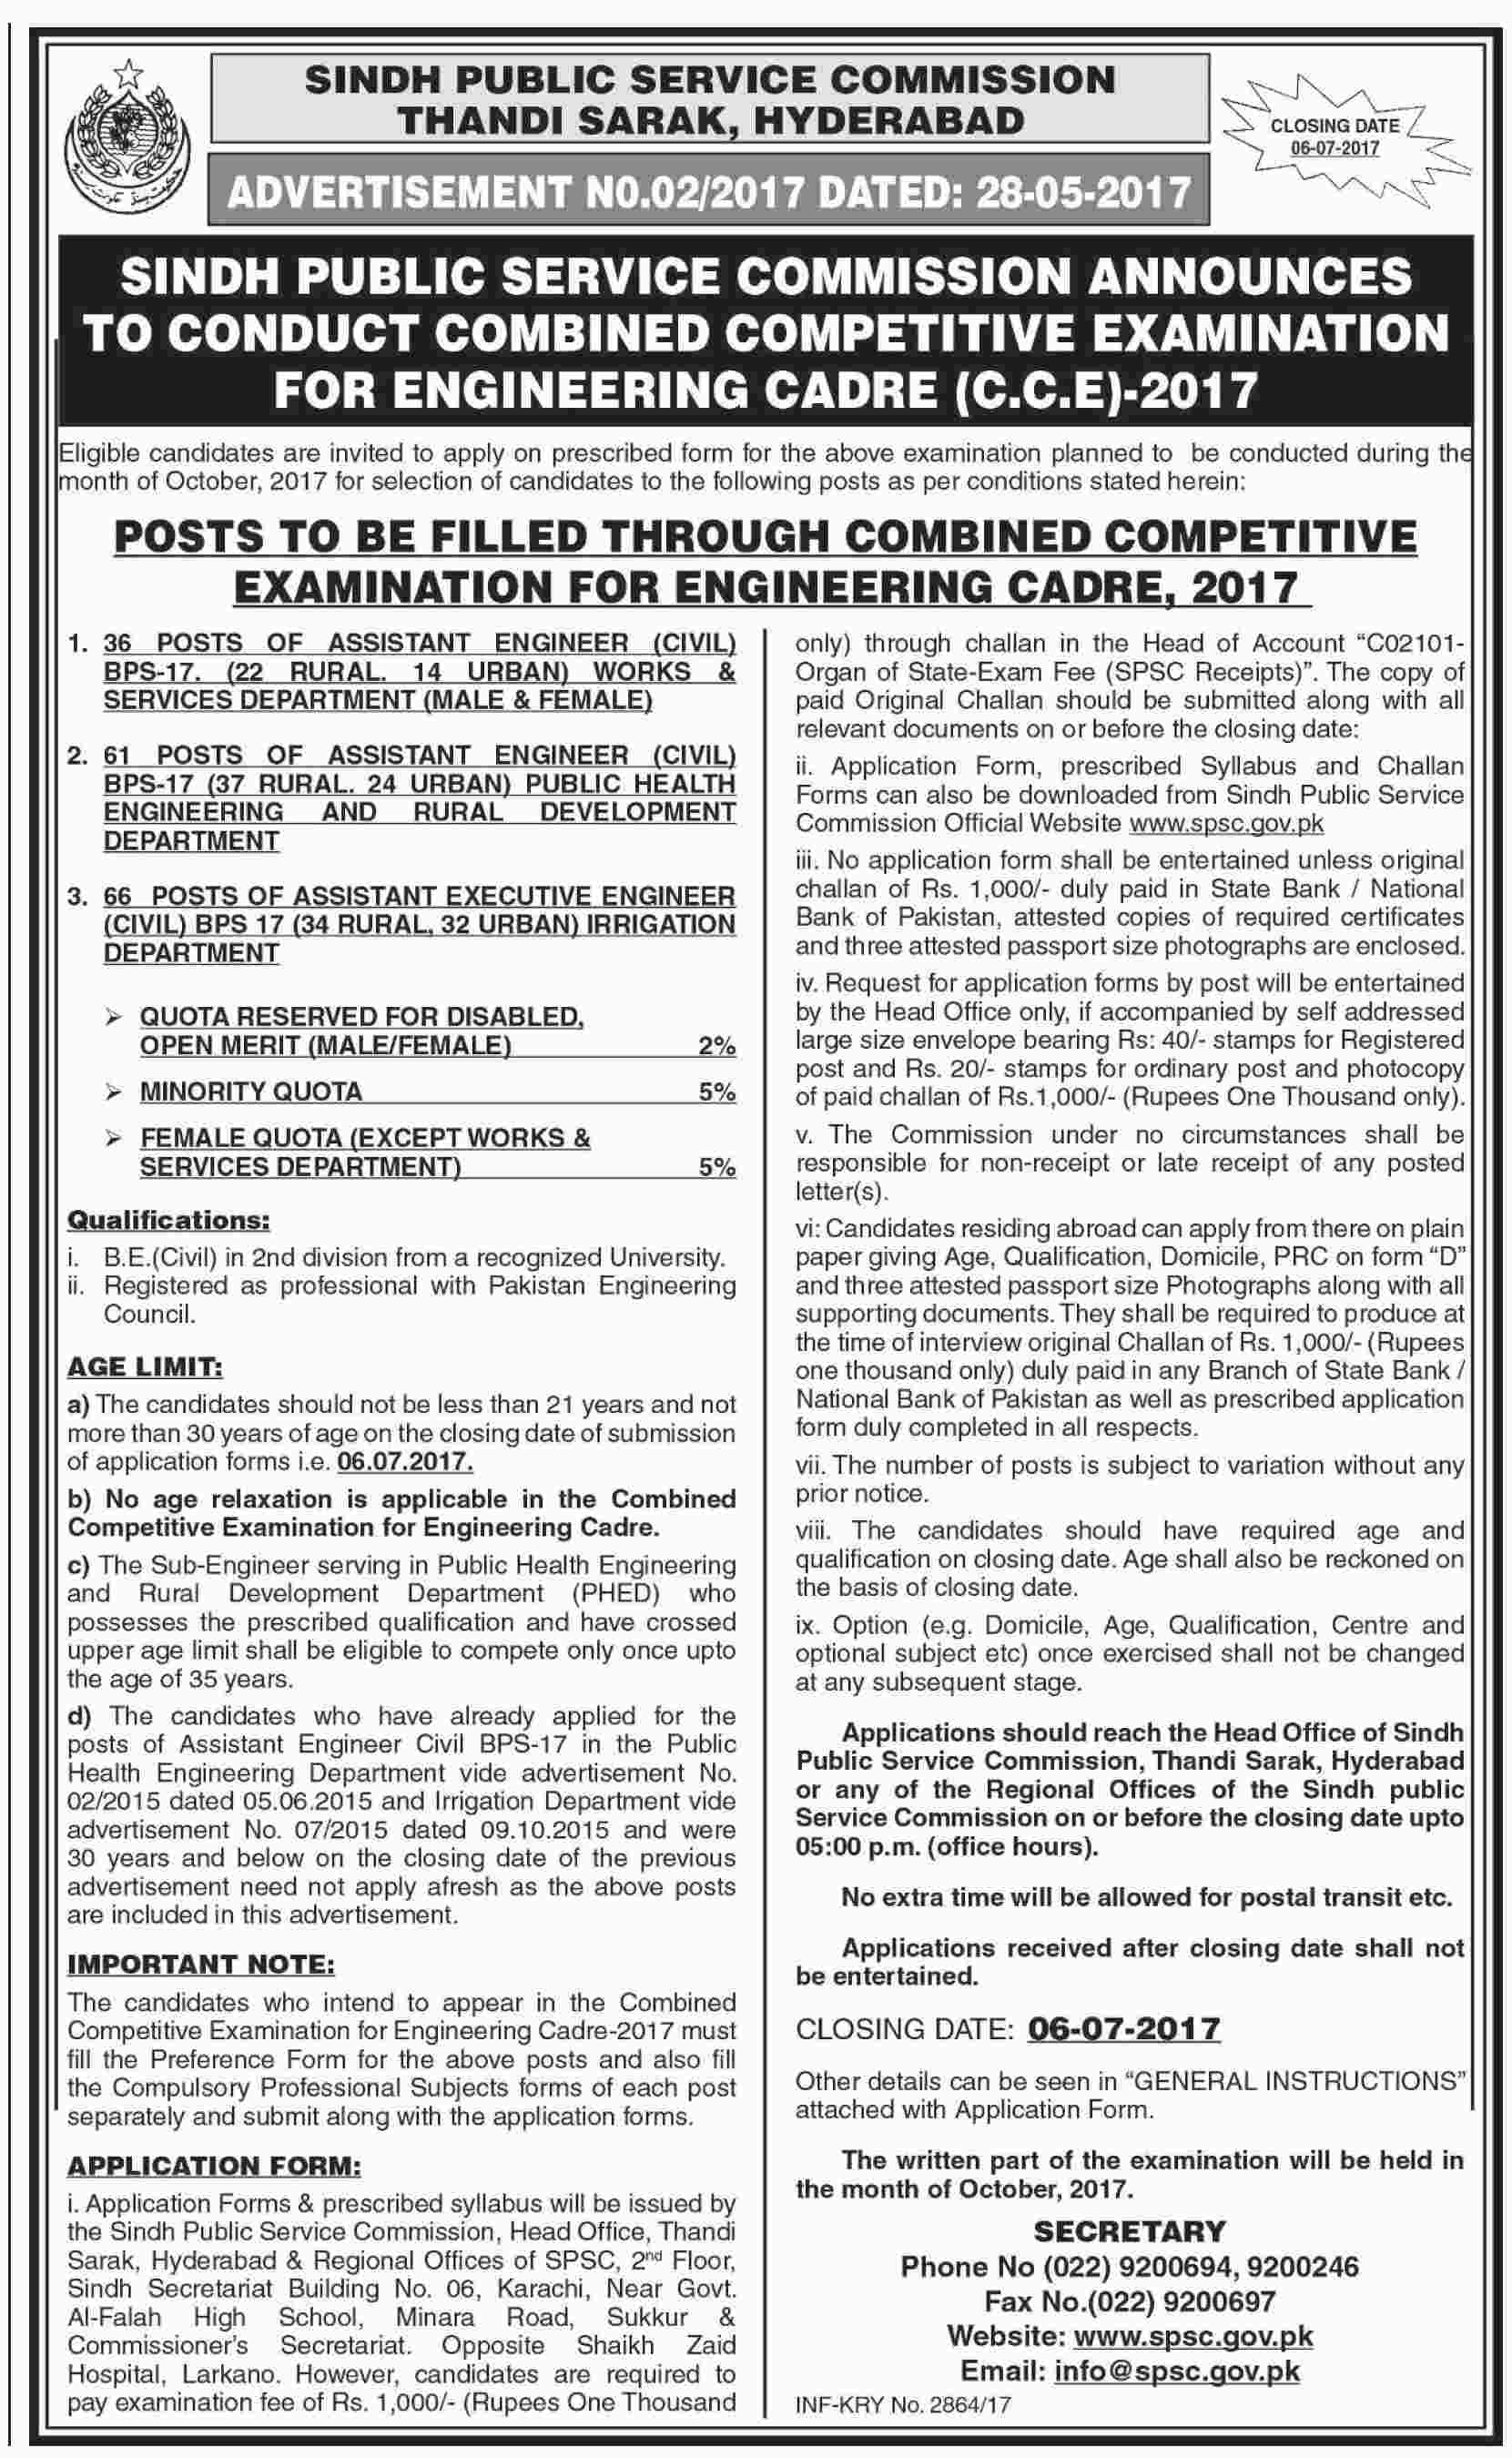 Sindh Public Service Commission 163 Jobs 19 January 2018 Jang Newspaper